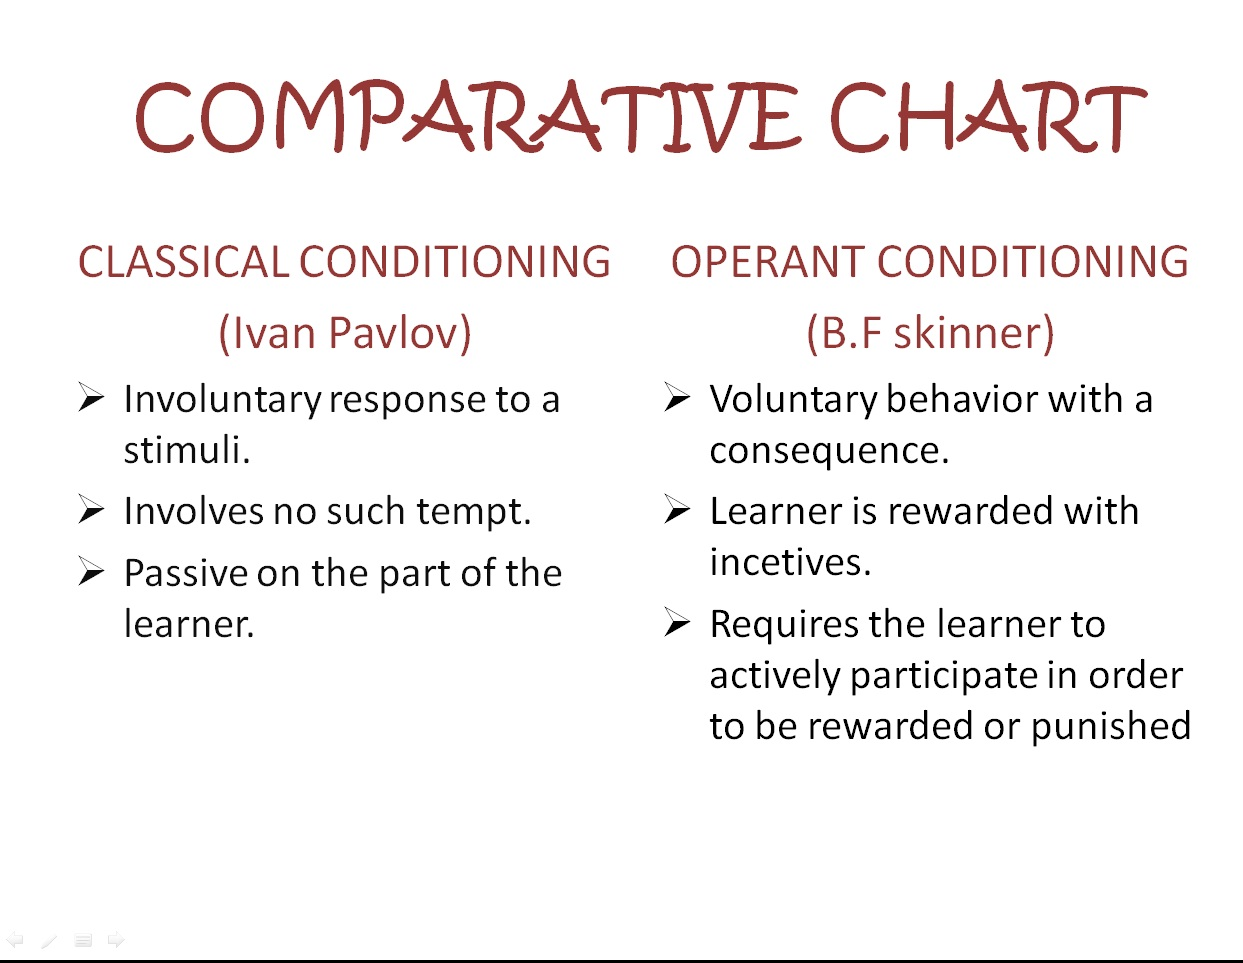 classical conditioning vs operant conditioning essay homework classical conditioning vs operant conditioning essay classical conditioning vs operant conditioning essay